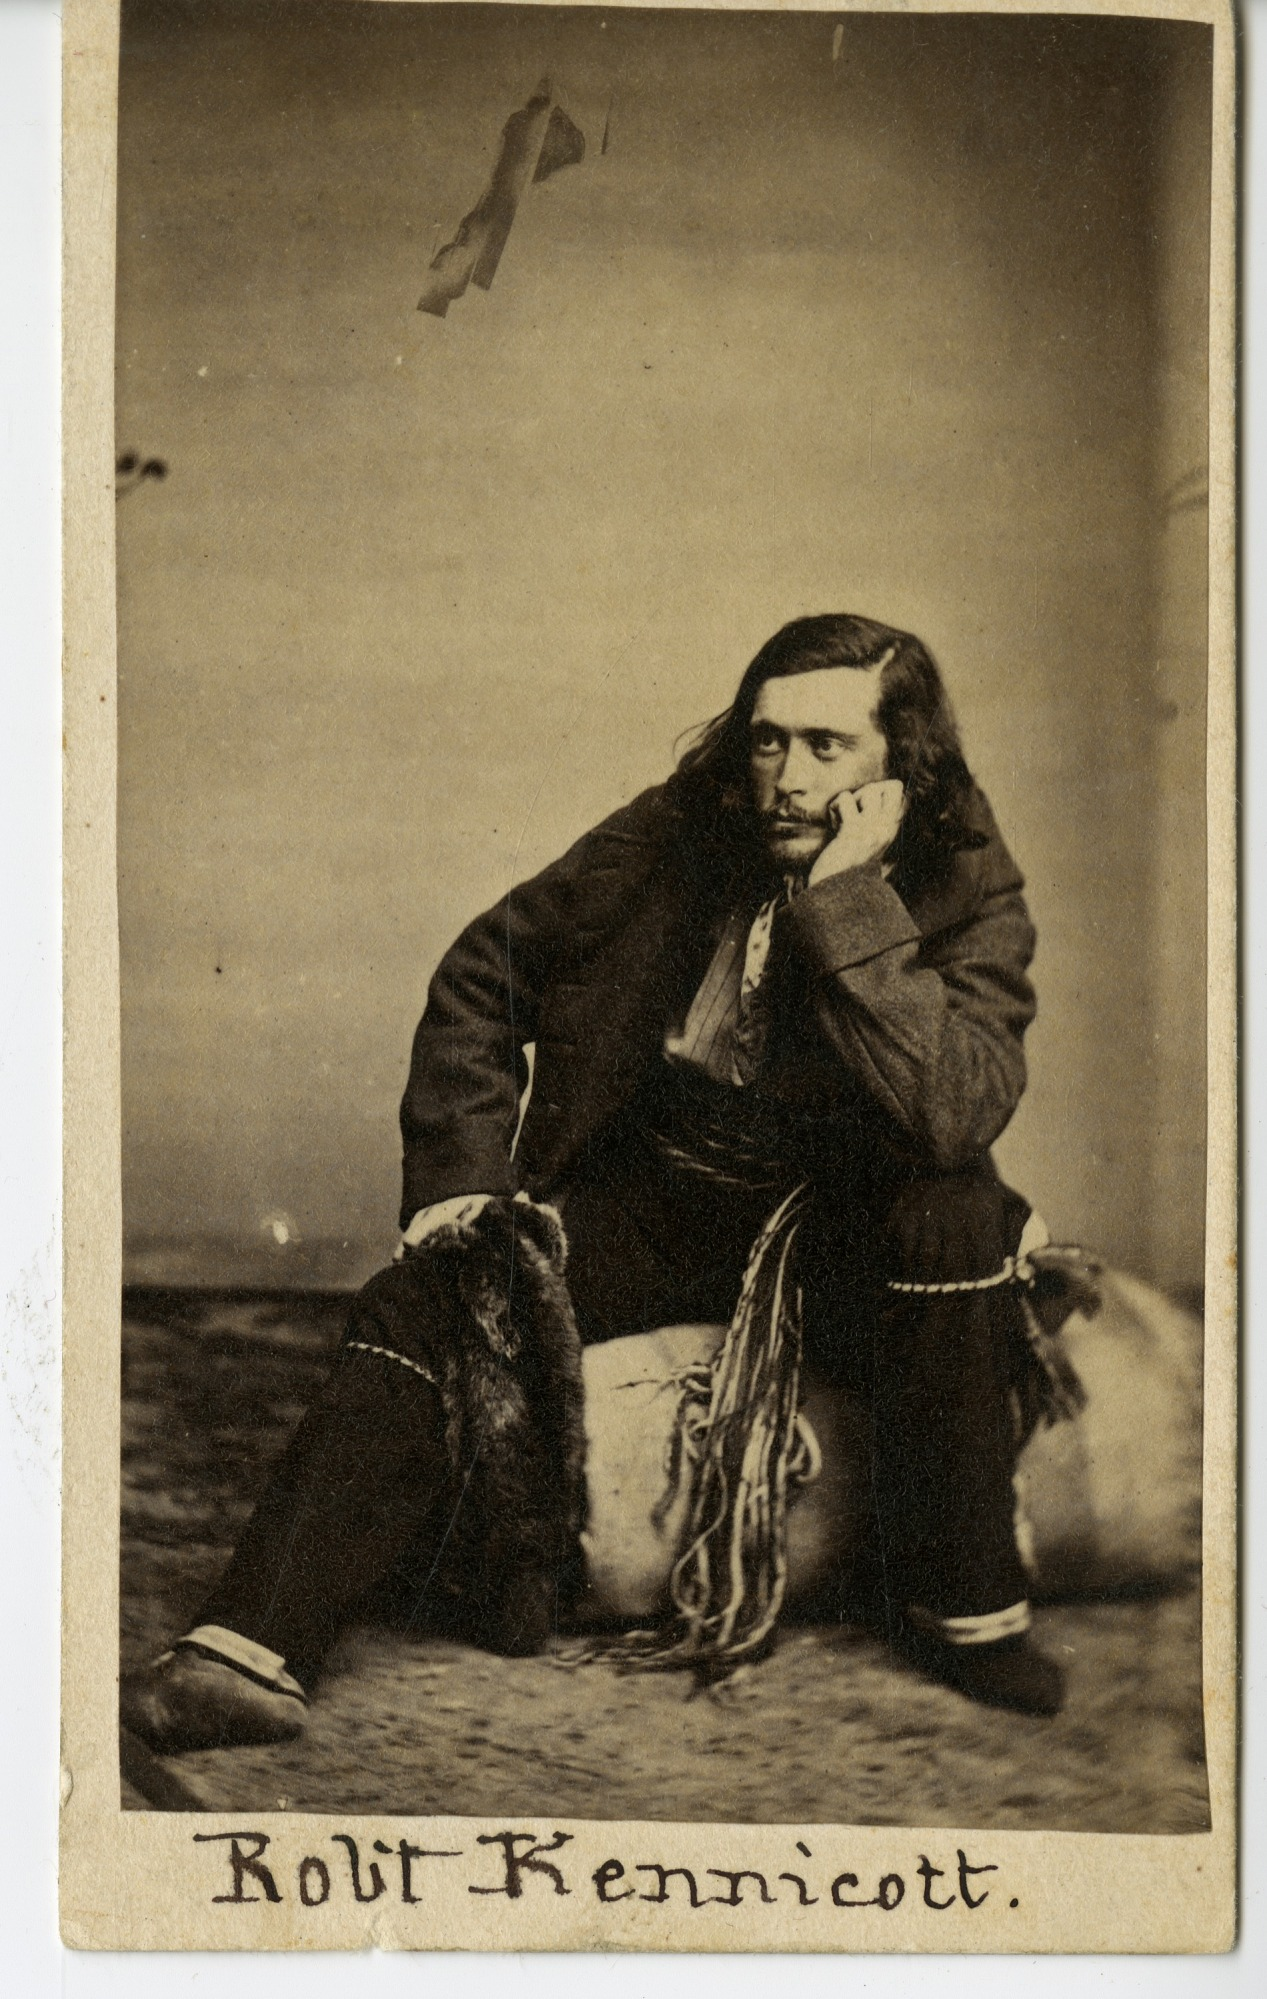 Preview of Robert Kennicott, Explorer, in Field Outfit